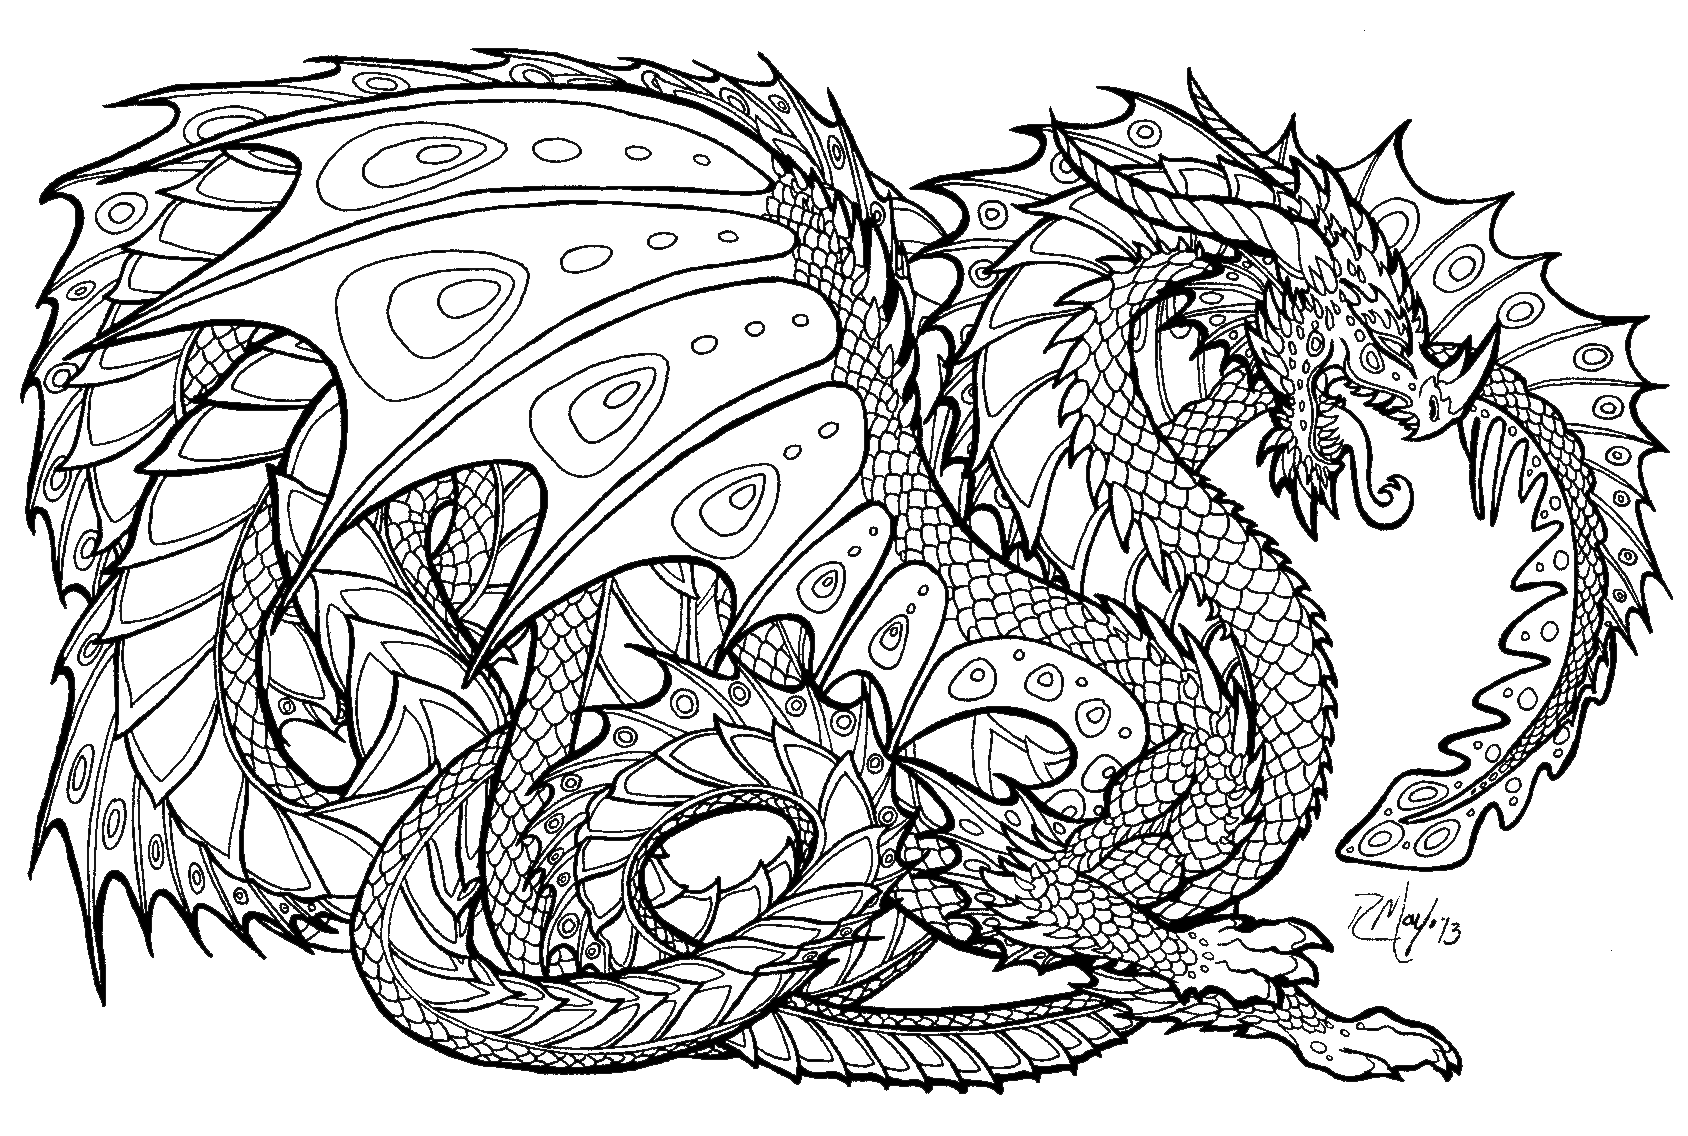 Dragon Coloring Pages For Adults Printable : adult coloring pages dragon Just Colorings